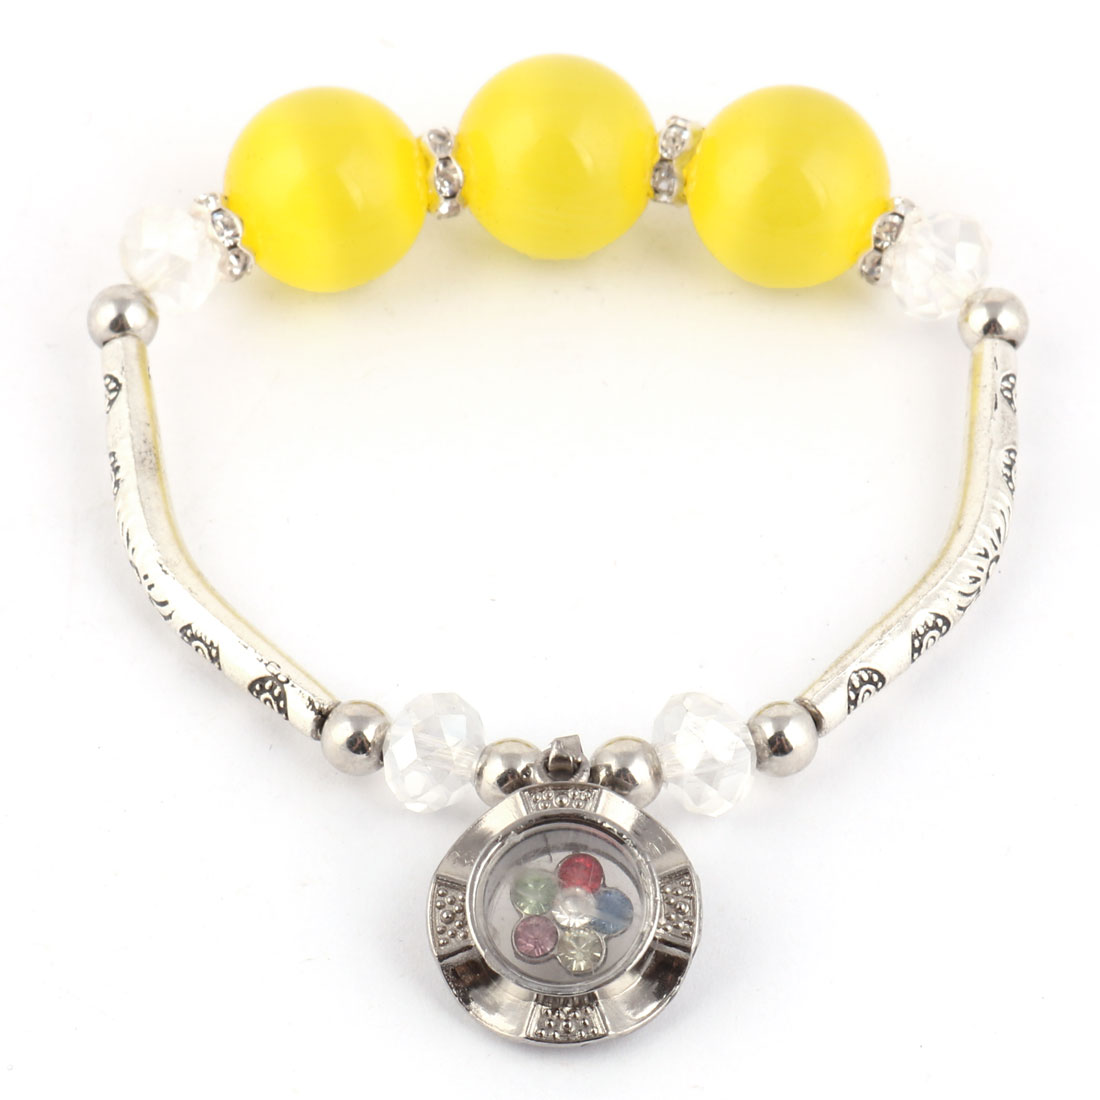 Lady Rhinestone Decor Pendant Bracelet Beads Bangle Silver Tone Yellow